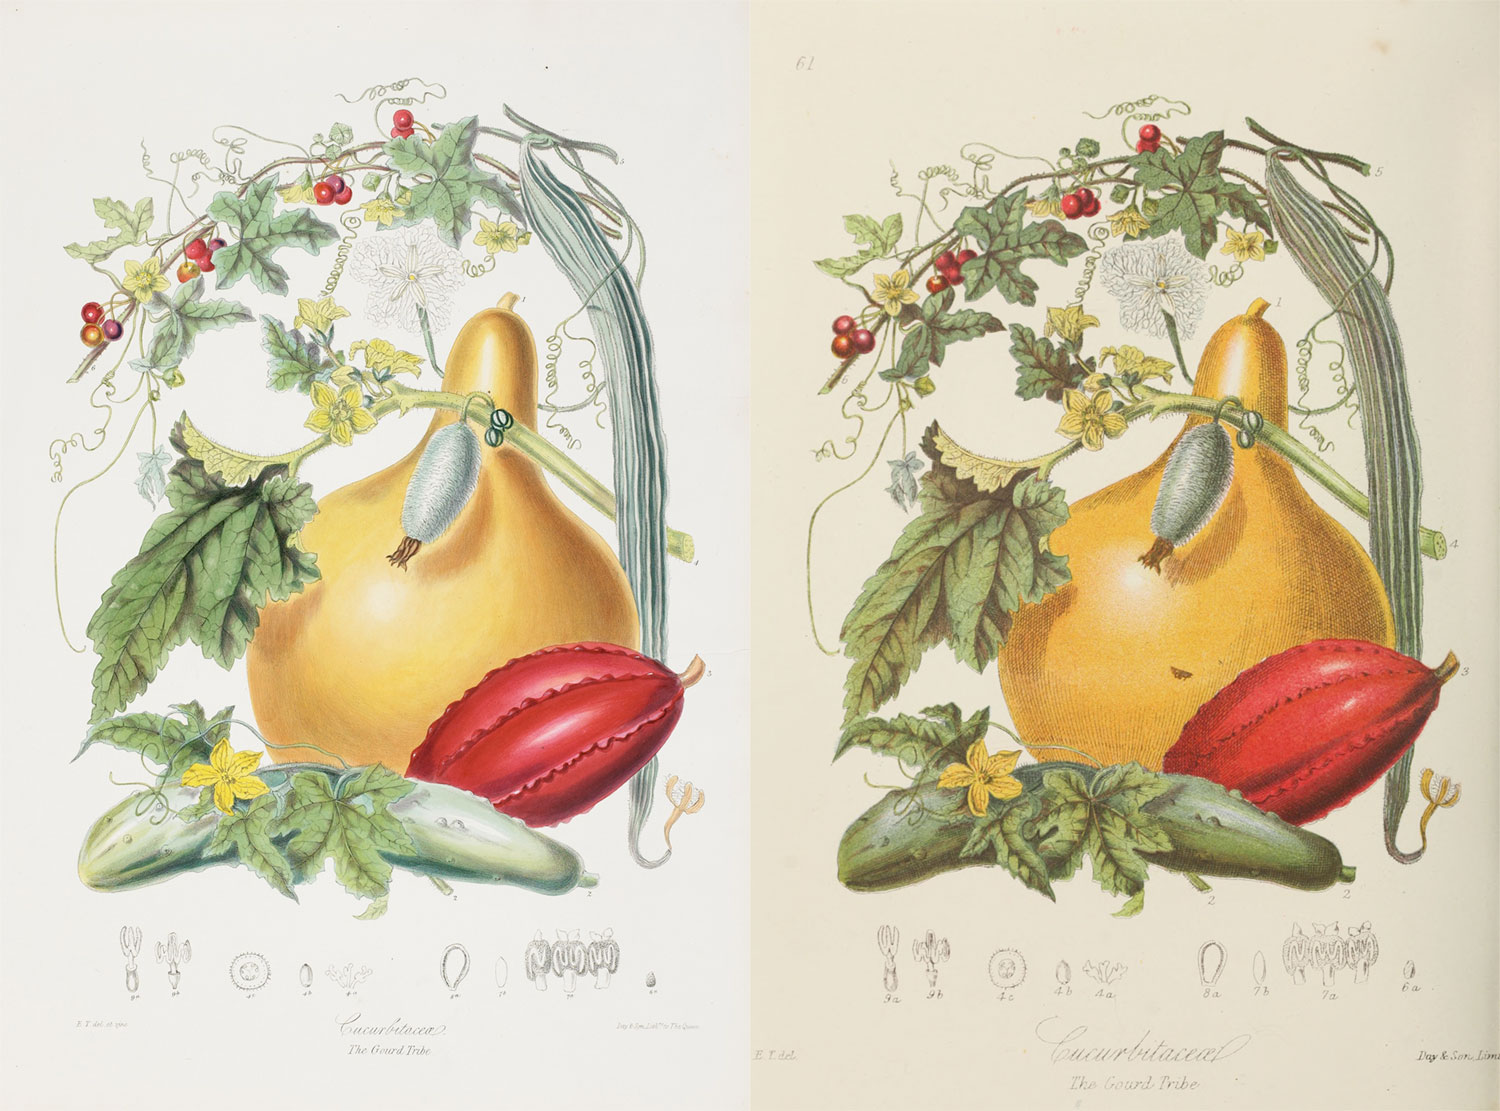 Side-by-side comparison of the original lithograph (left) and reproduction (right) of the gourd tribe